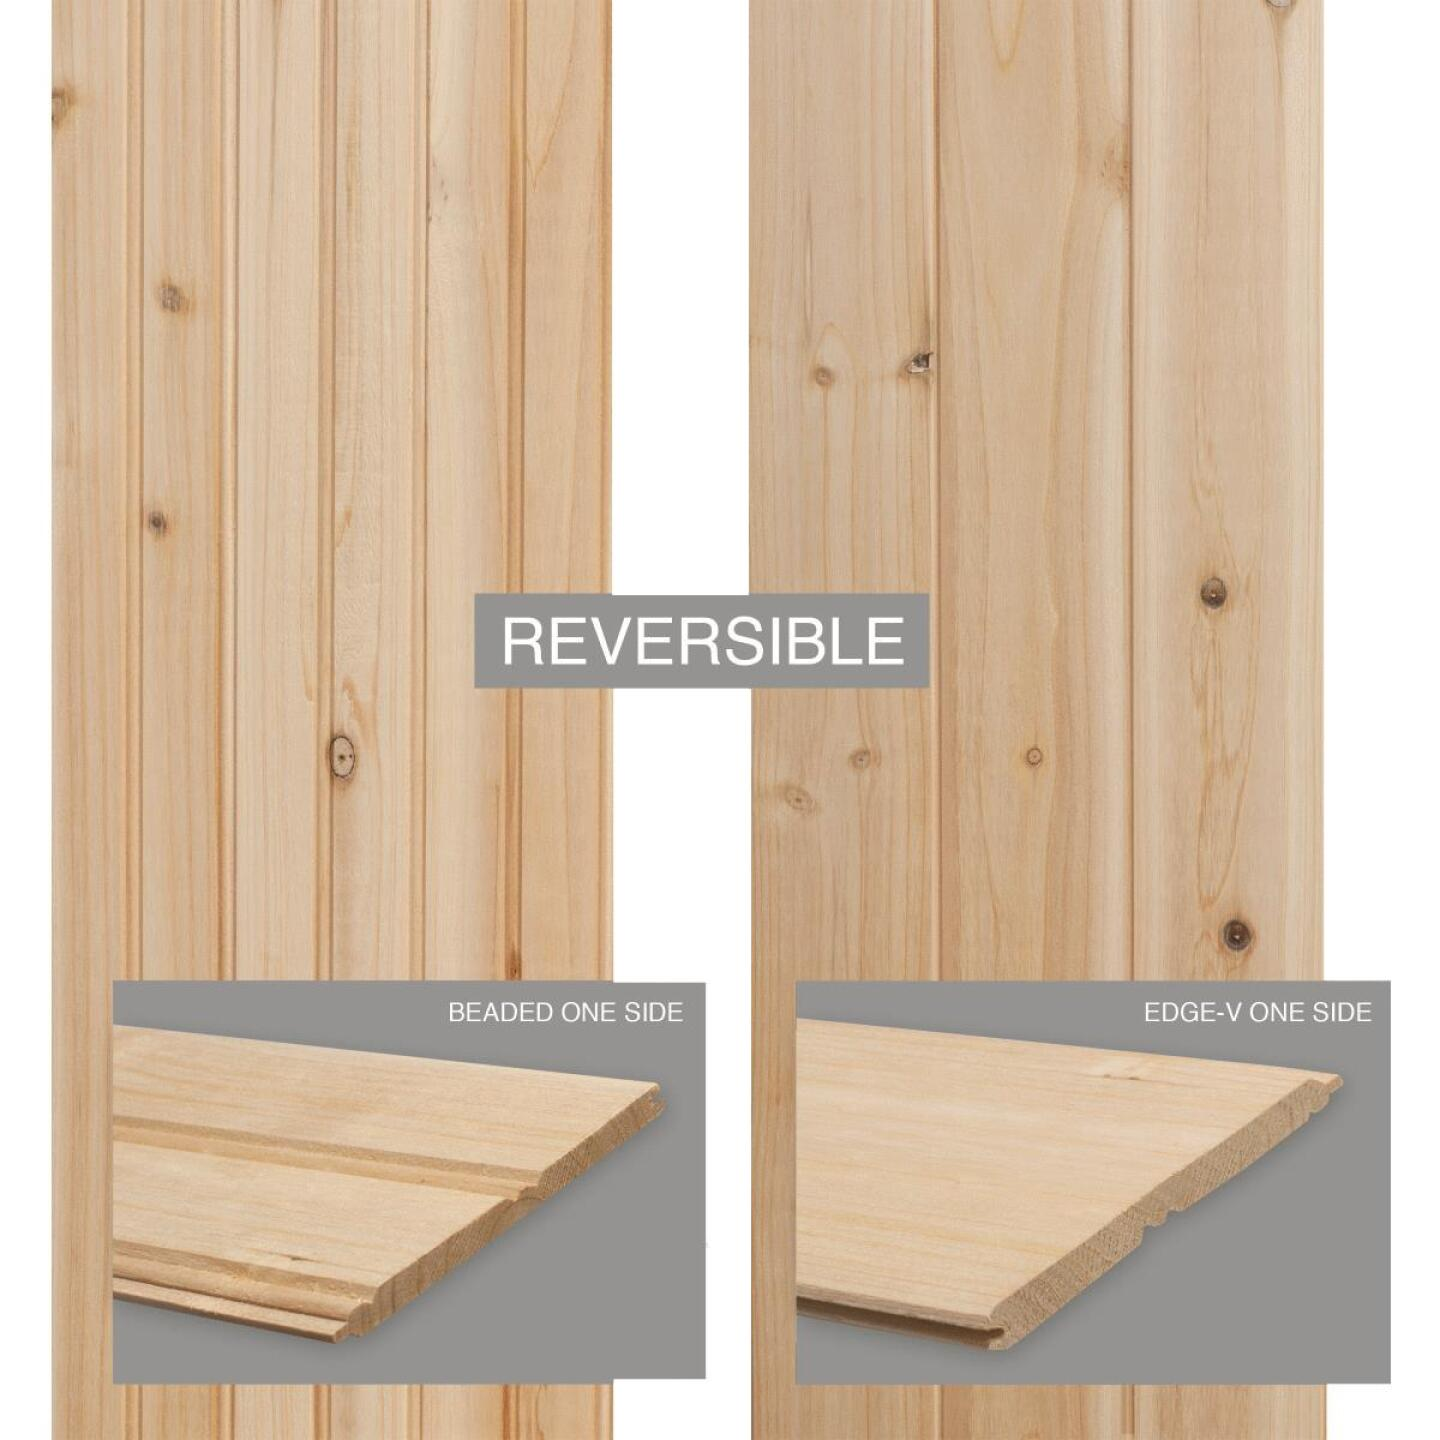 Global Product Sourcing 3-1/2 In. W. x 8 Ft. L. x 1/4 In. Thick Knotty Cedar Reversible Profile Wall Plank (6-Pack) Image 3